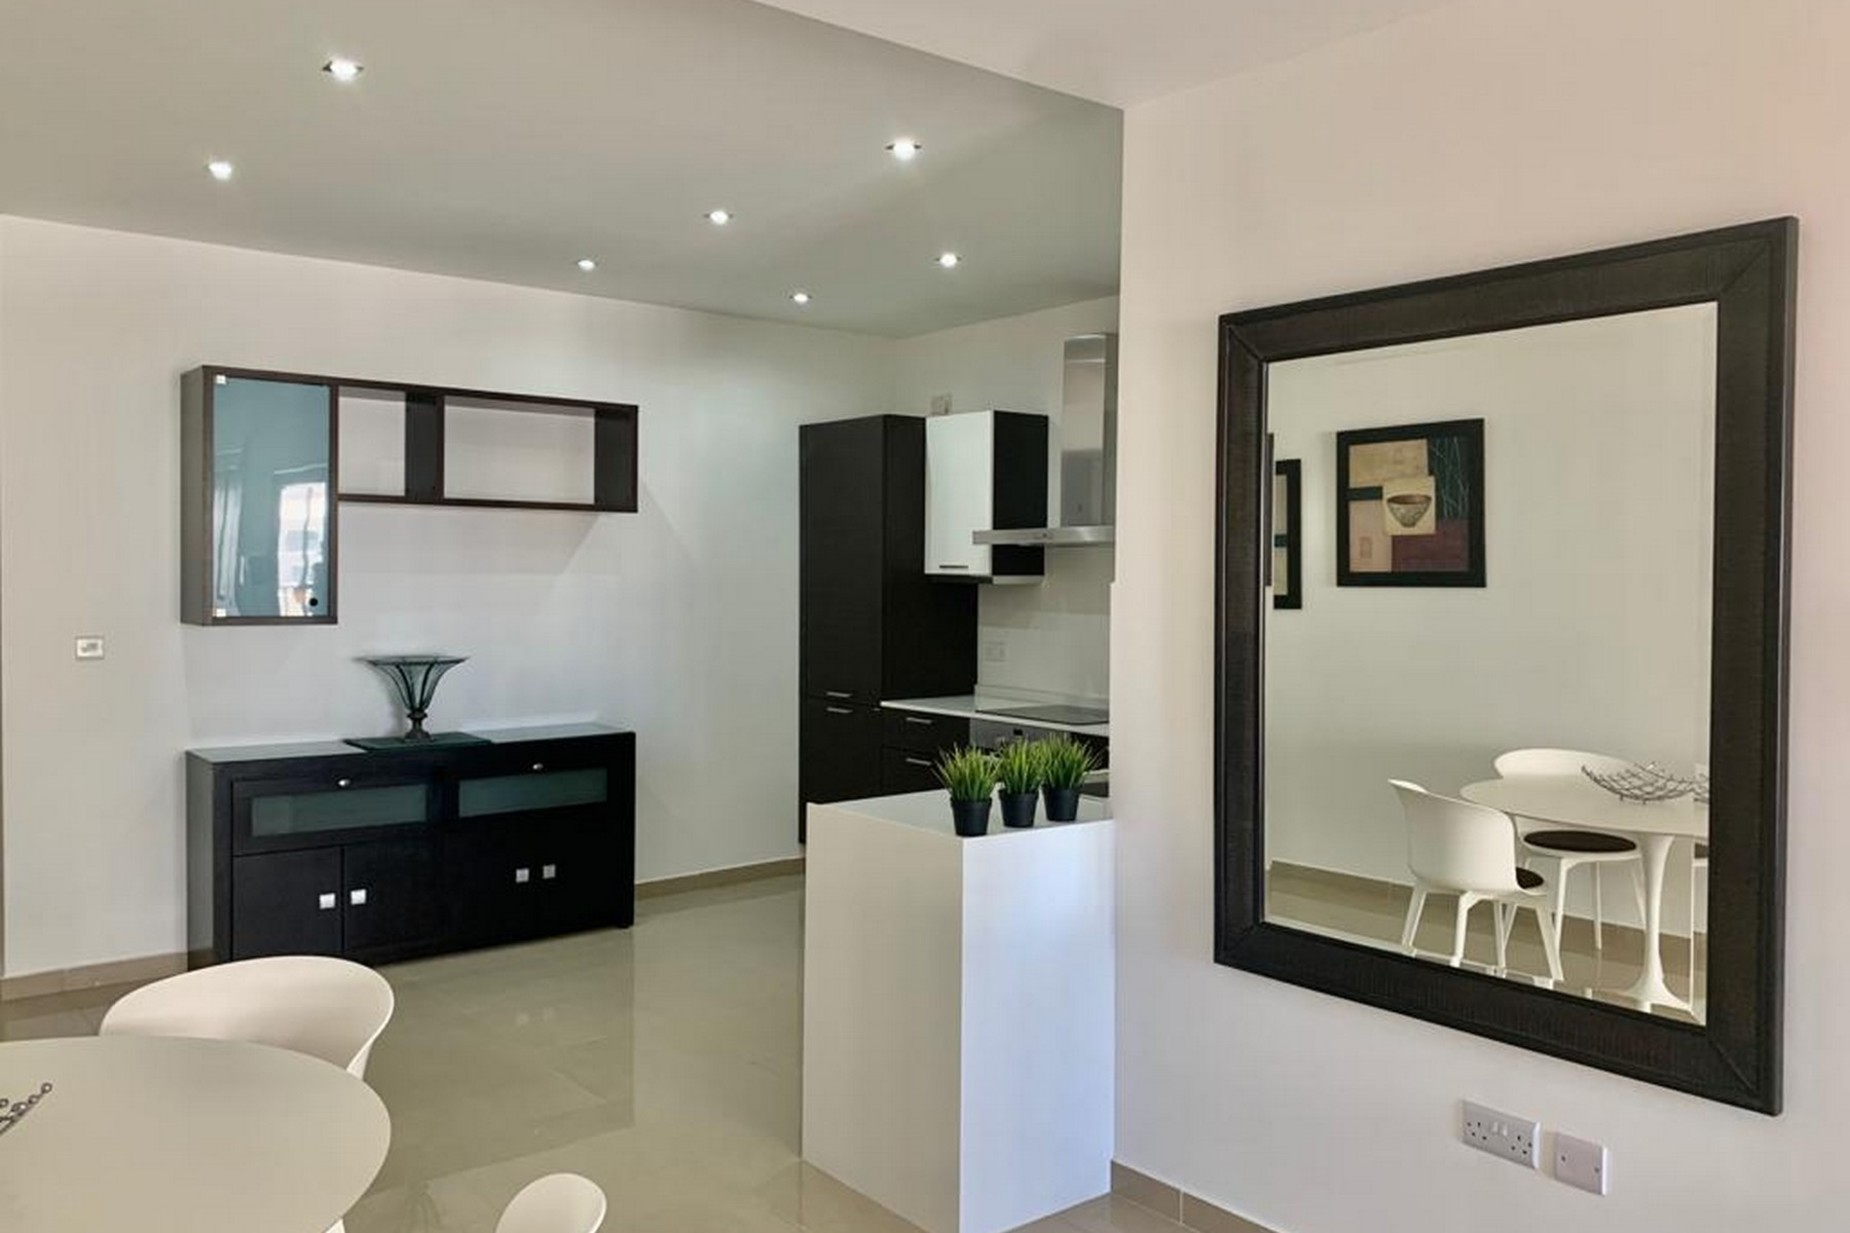 3 bed Apartment For Rent in Ibragg, Ibragg - thumb 13